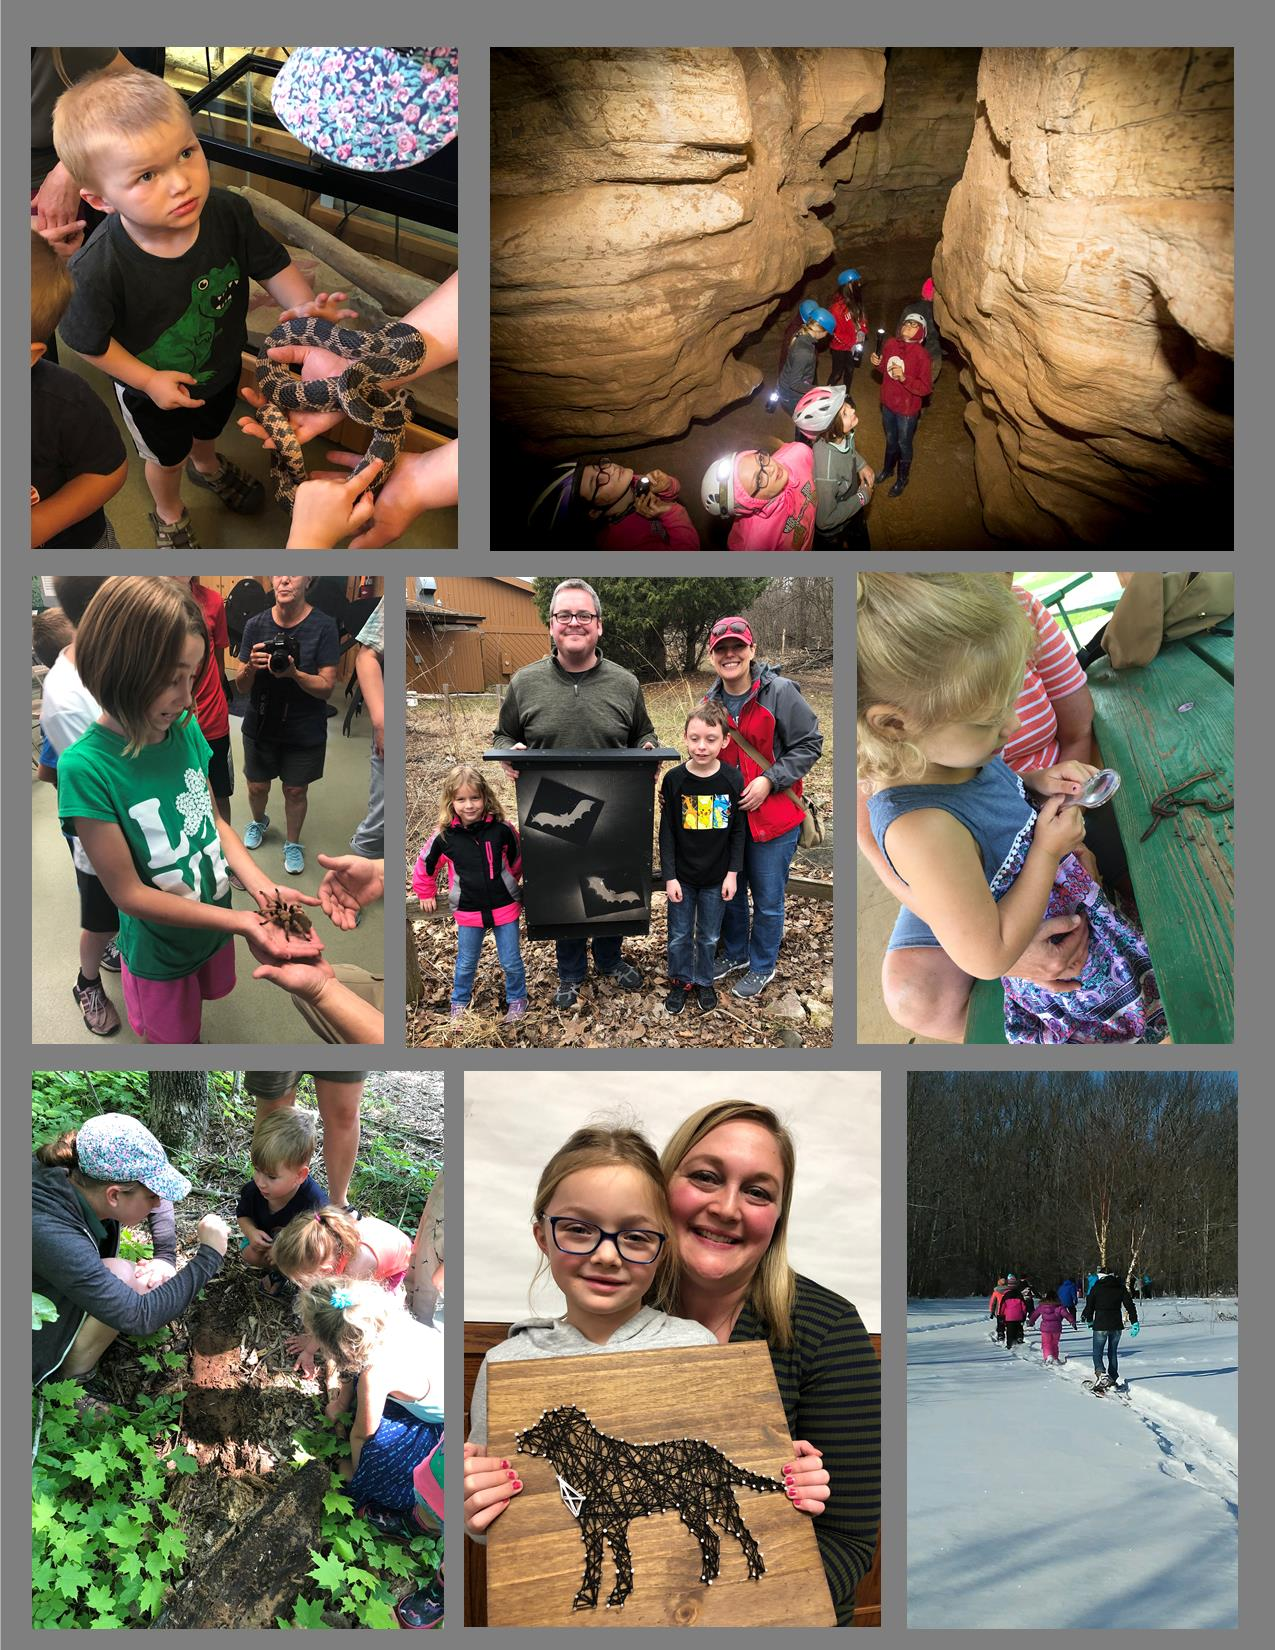 A collage of pictures of people doing different programs at Ledge View Nature Center.